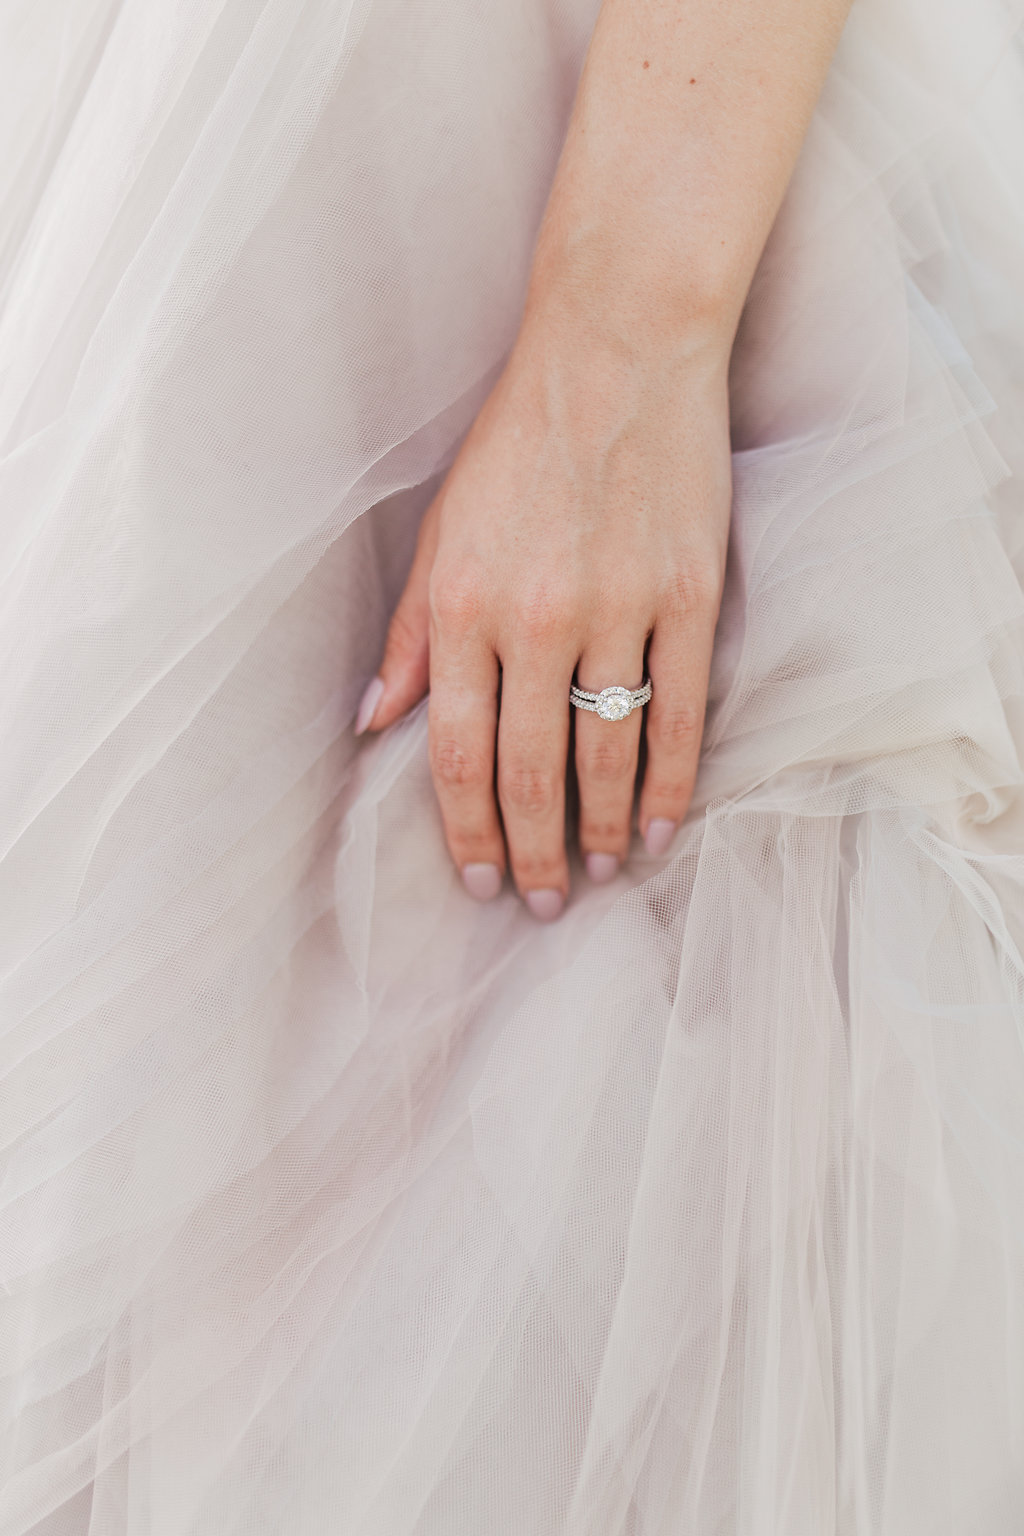 round engagement rings - photo by Alondra Vega Photography http://ruffledblog.com/jewel-toned-wedding-ideas-with-a-surprise-proposal